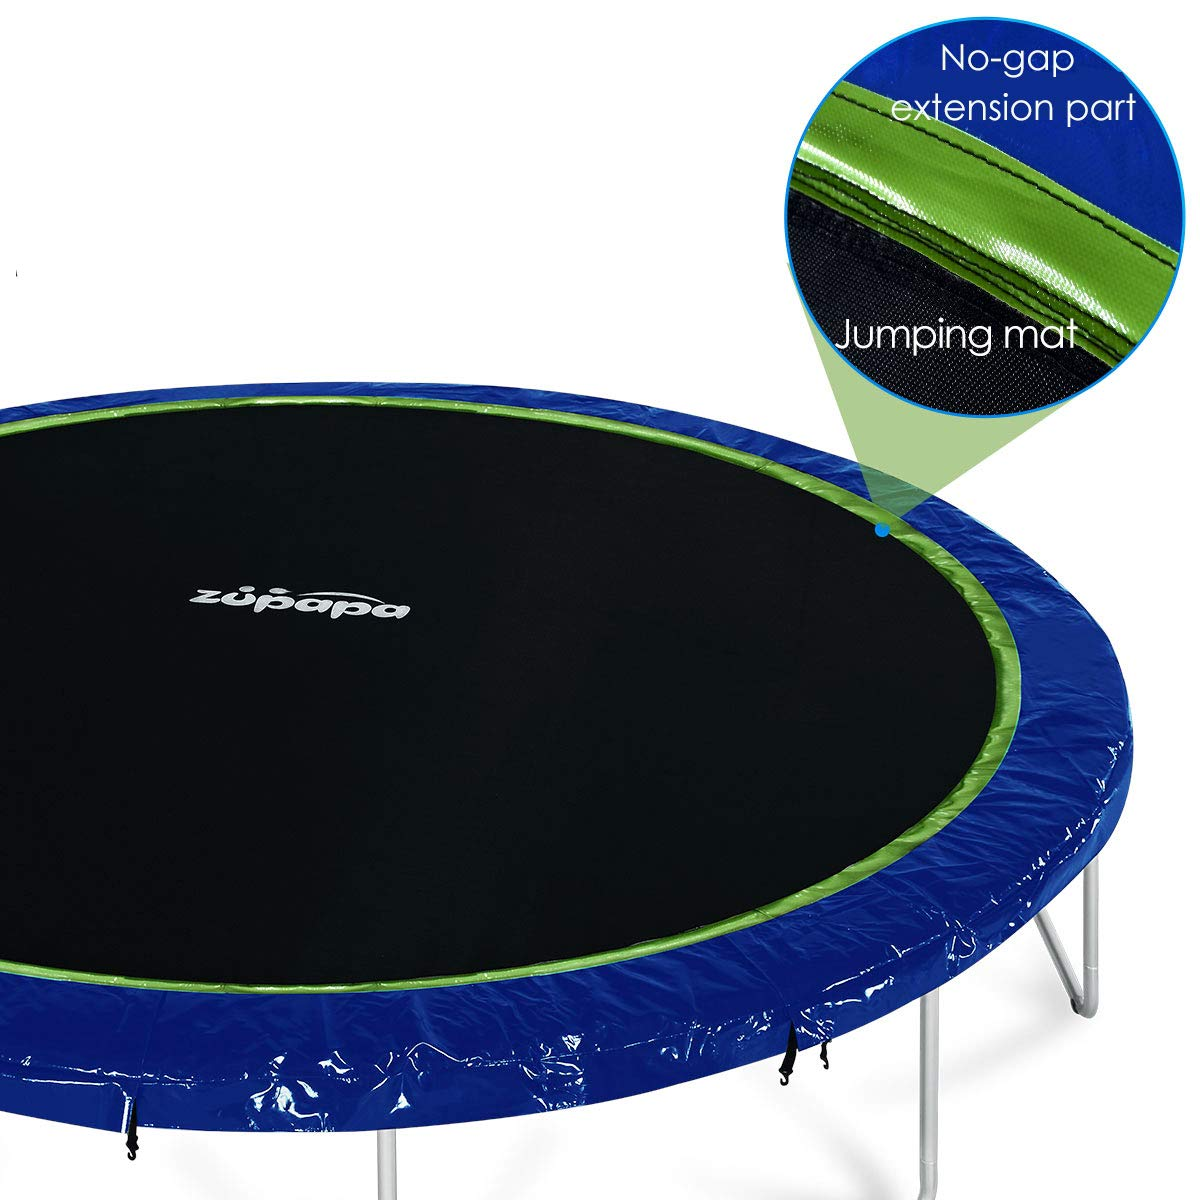 Zupapa 2019 Trampoline 15FT 14FT 12FT 10FT Newest No-Gap Jumping Mat Replacement (10FT) by Zupapa (Image #1)